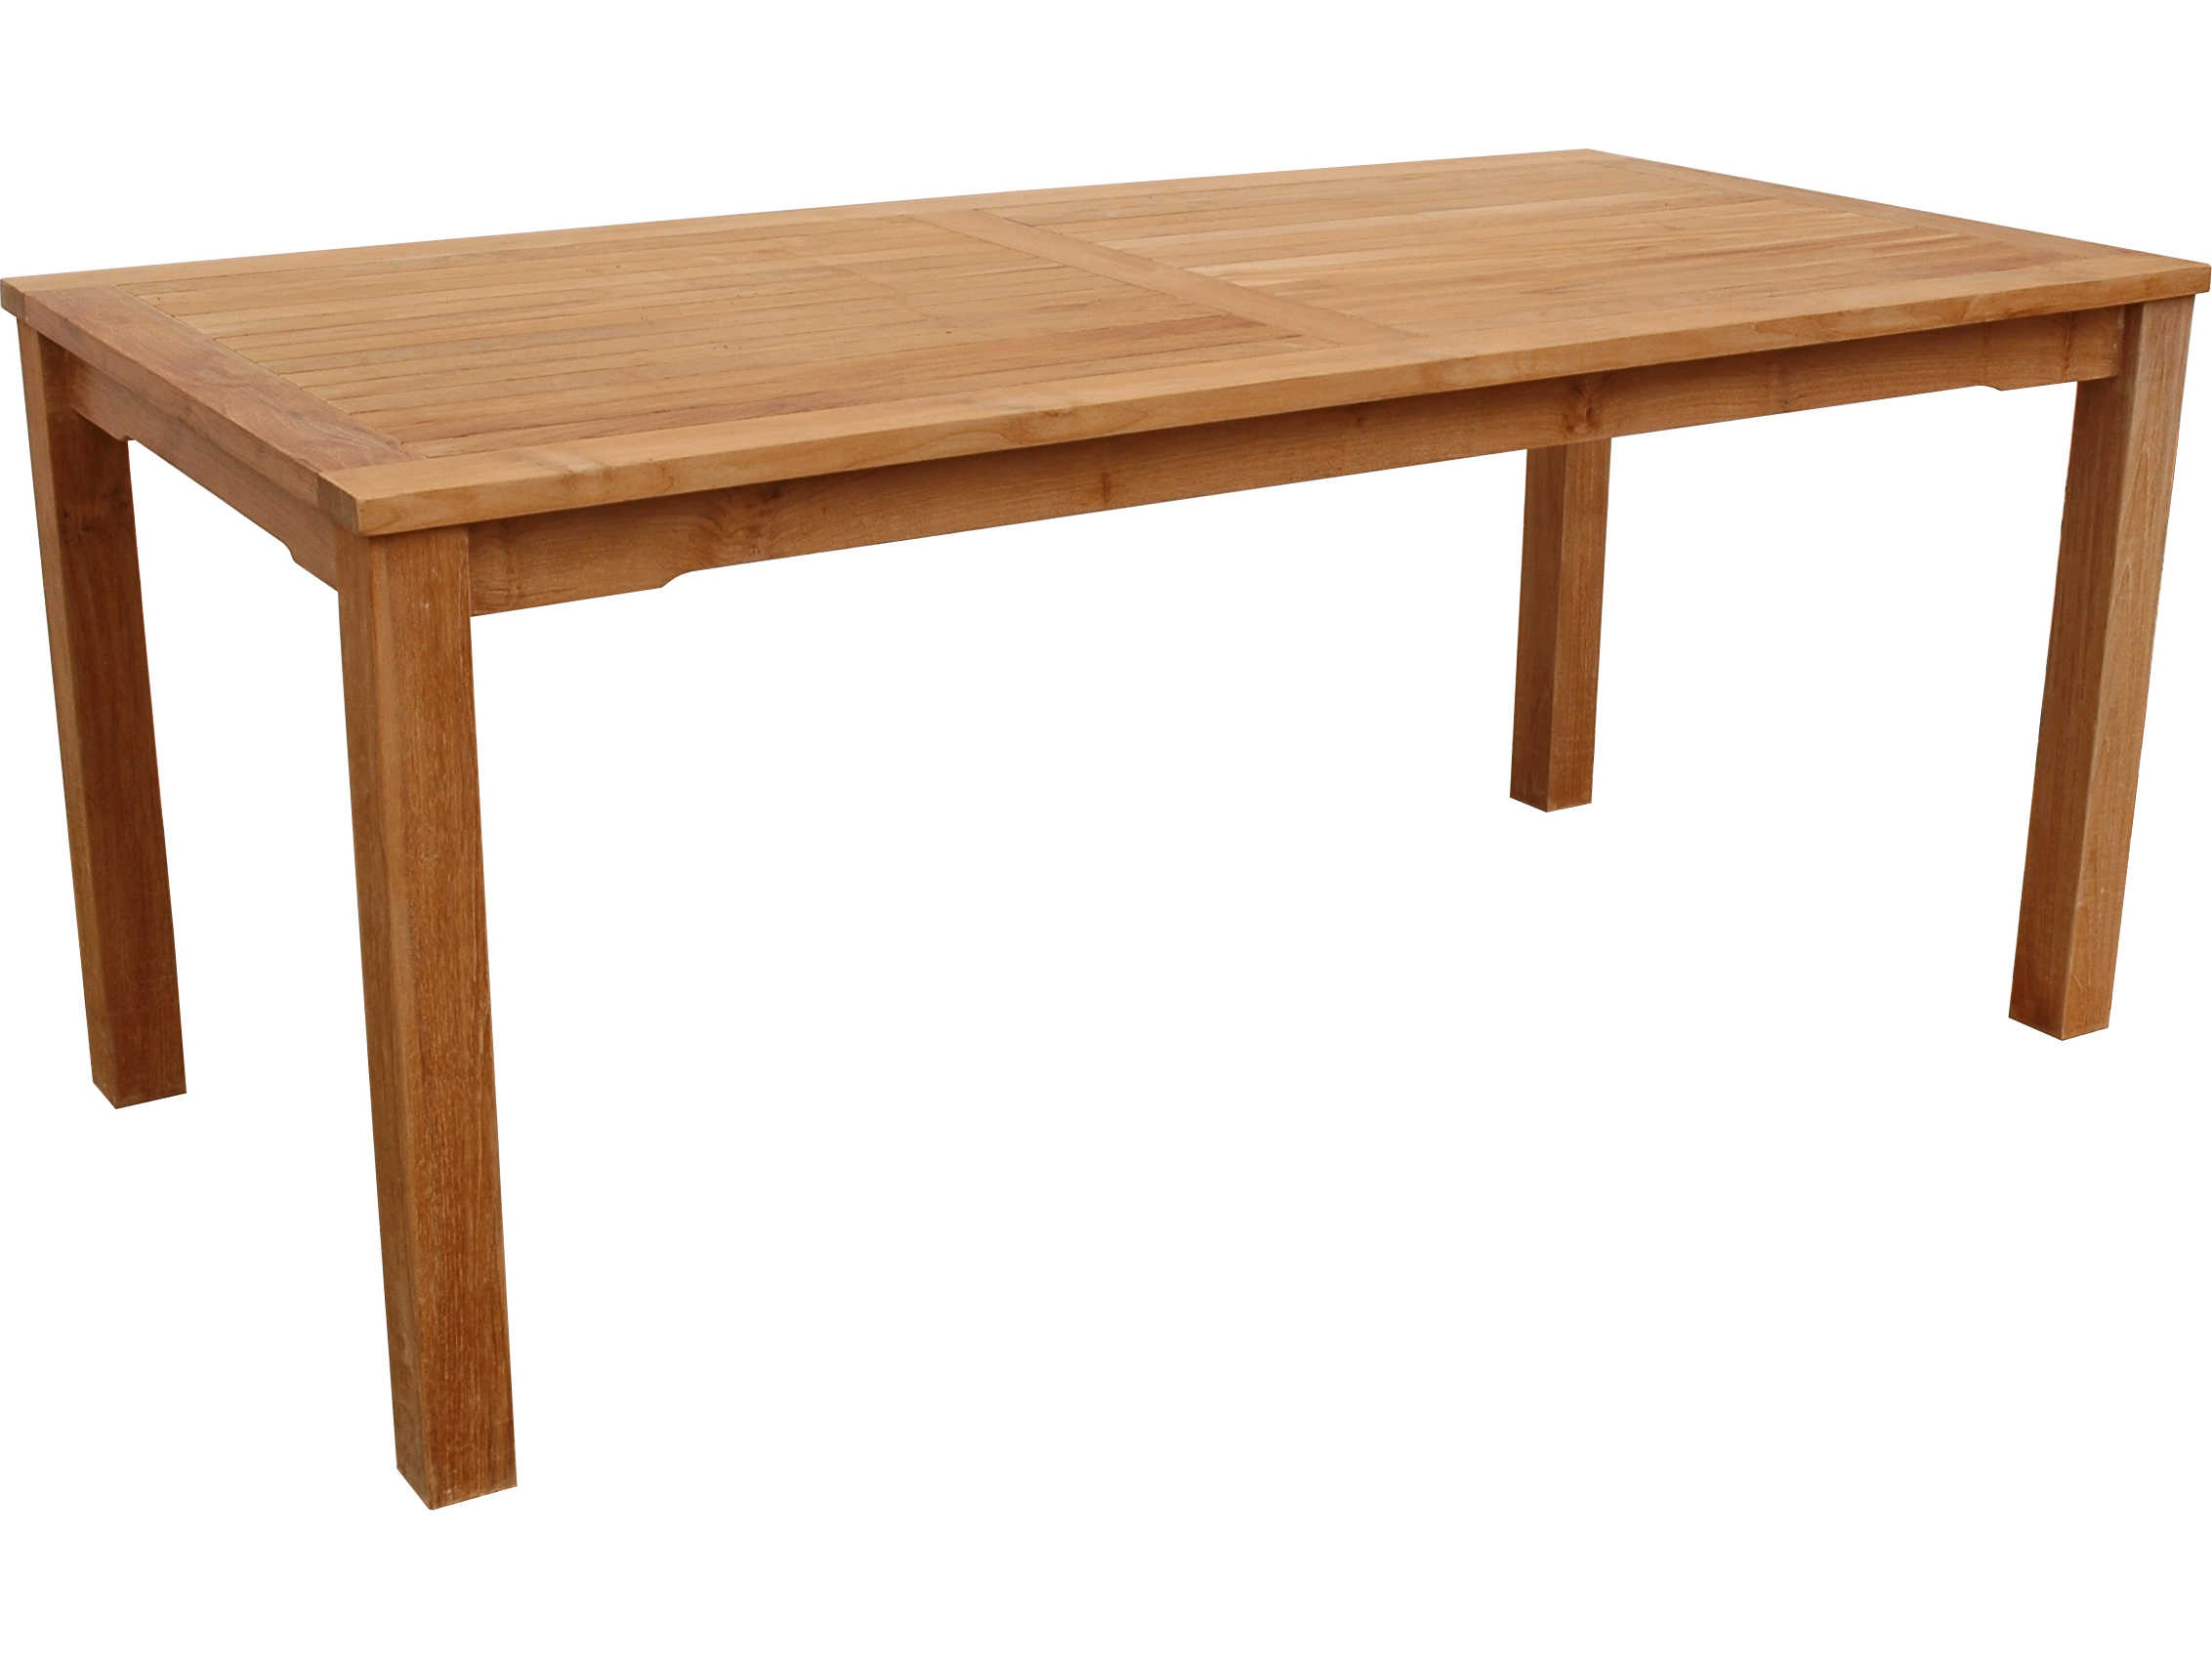 Anderson Teak Bahama 70 X 35 Rectangular Dining Table | Tb In Best And Newest Eleni 35'' Dining Tables (View 2 of 15)